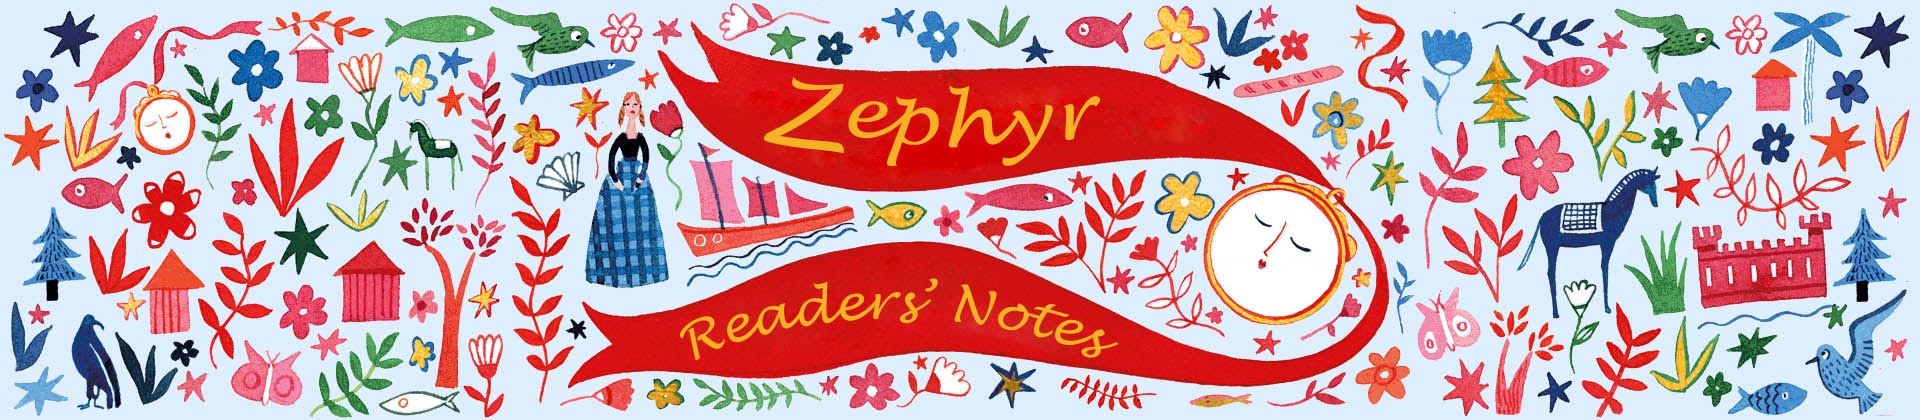 Zephyr Readers' Notes